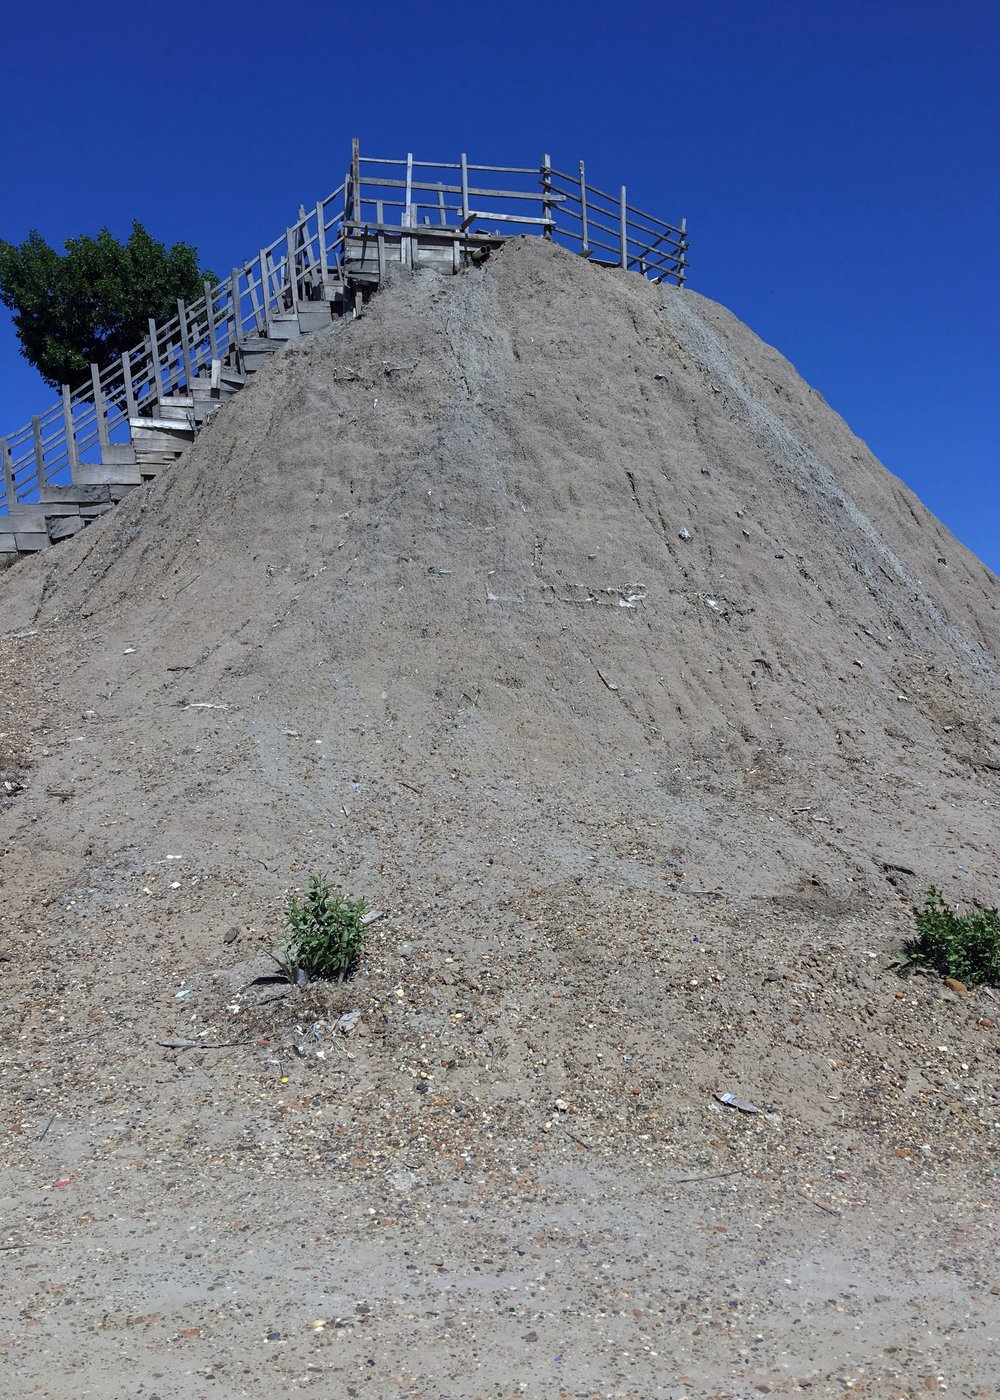 The not-so-glamourous Totumo mud volcano